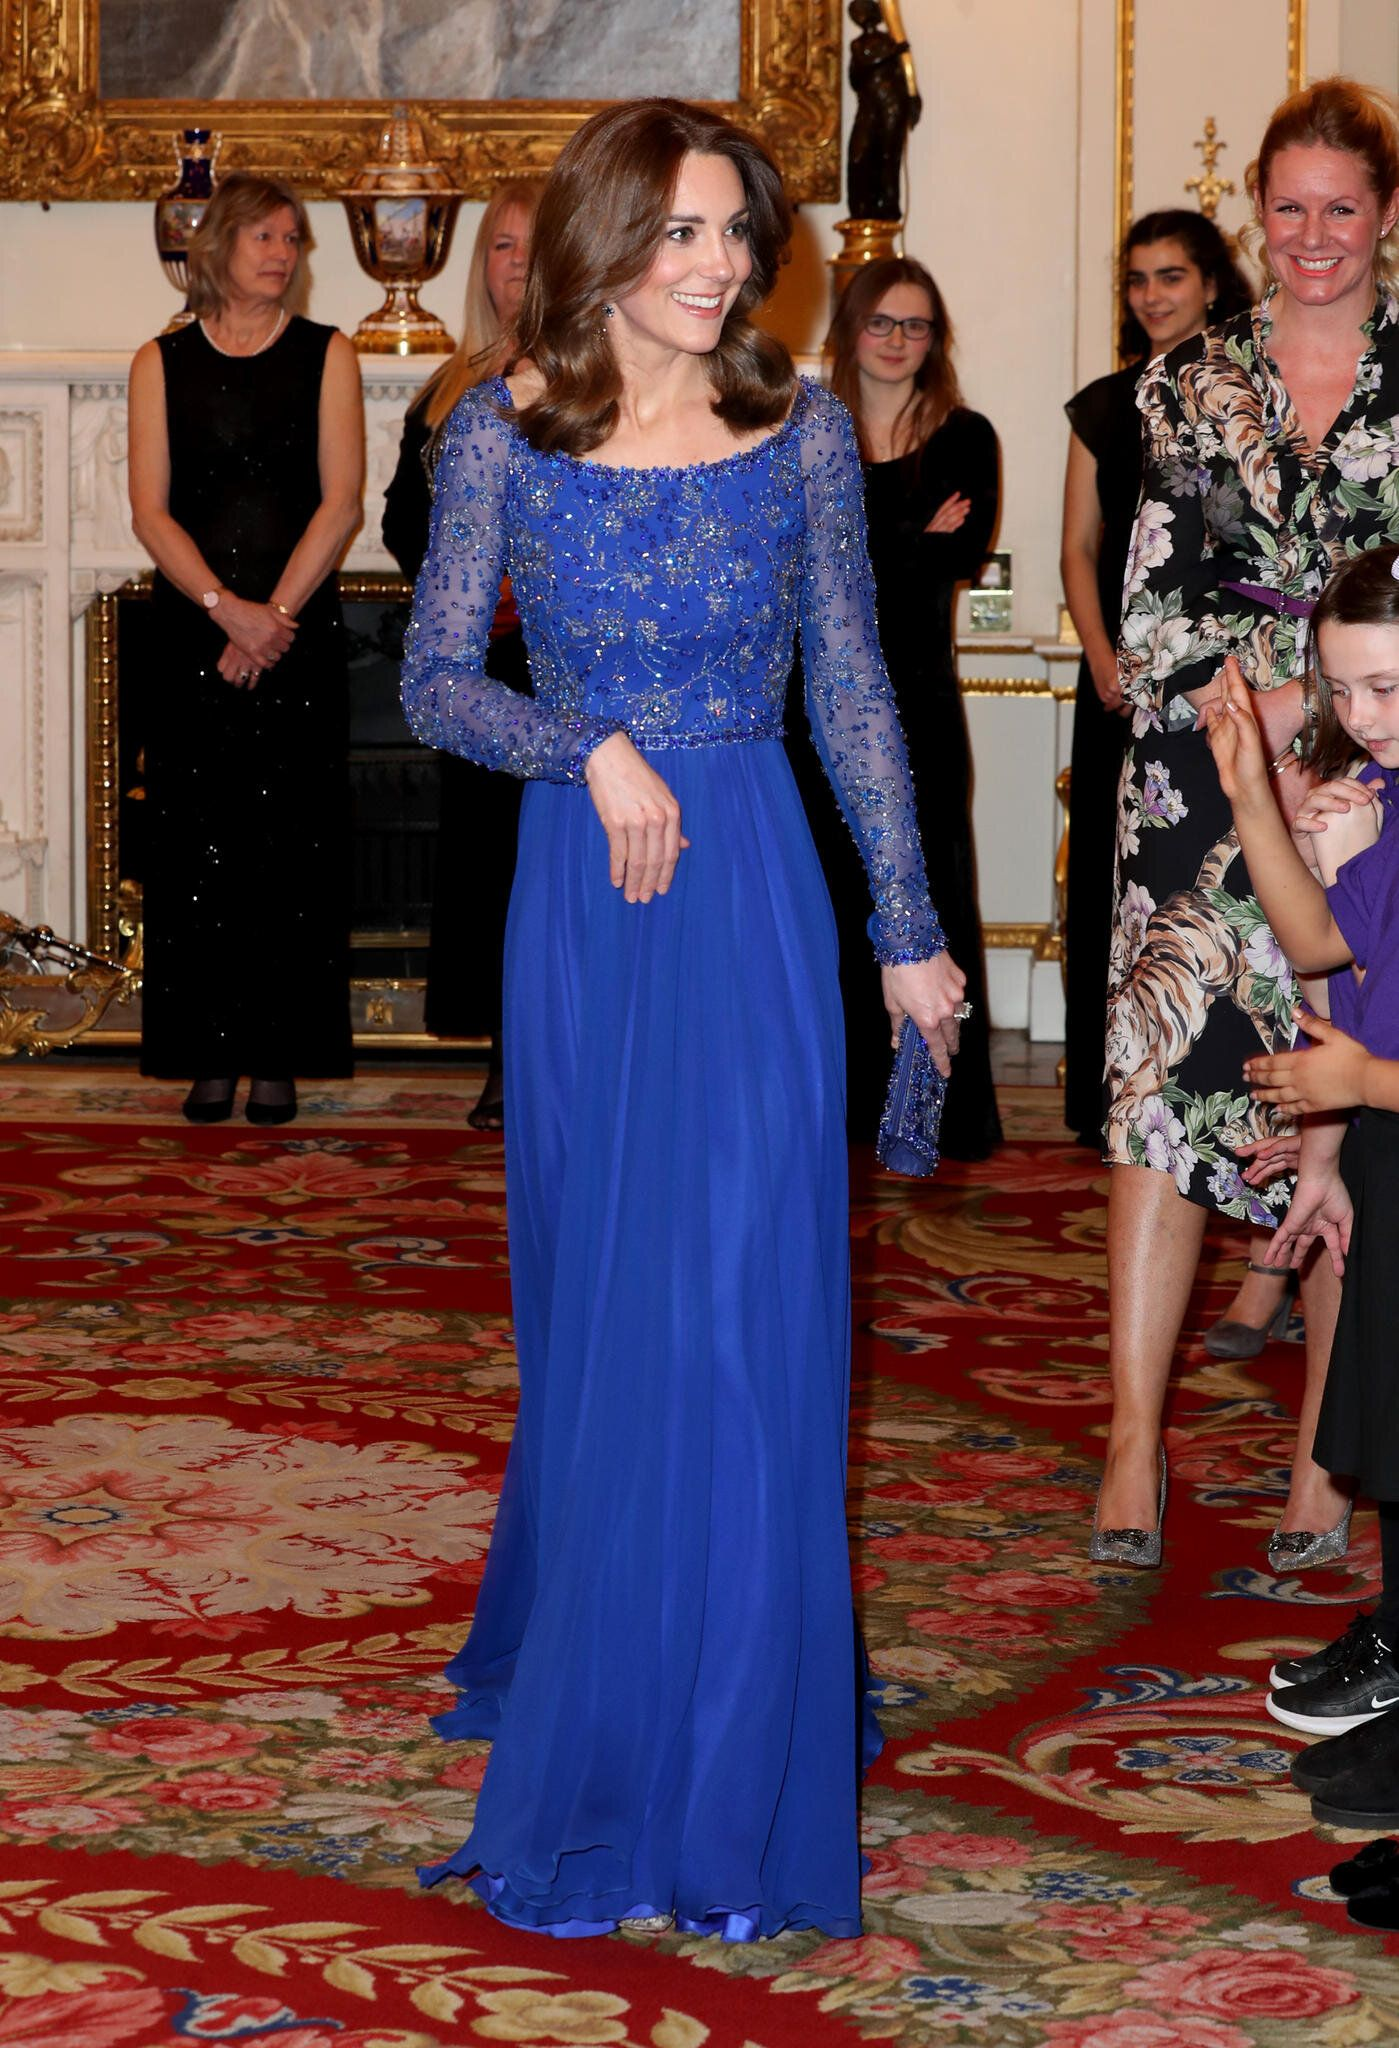 Kate Middleton re-wearing the royal blue dress at a recent event